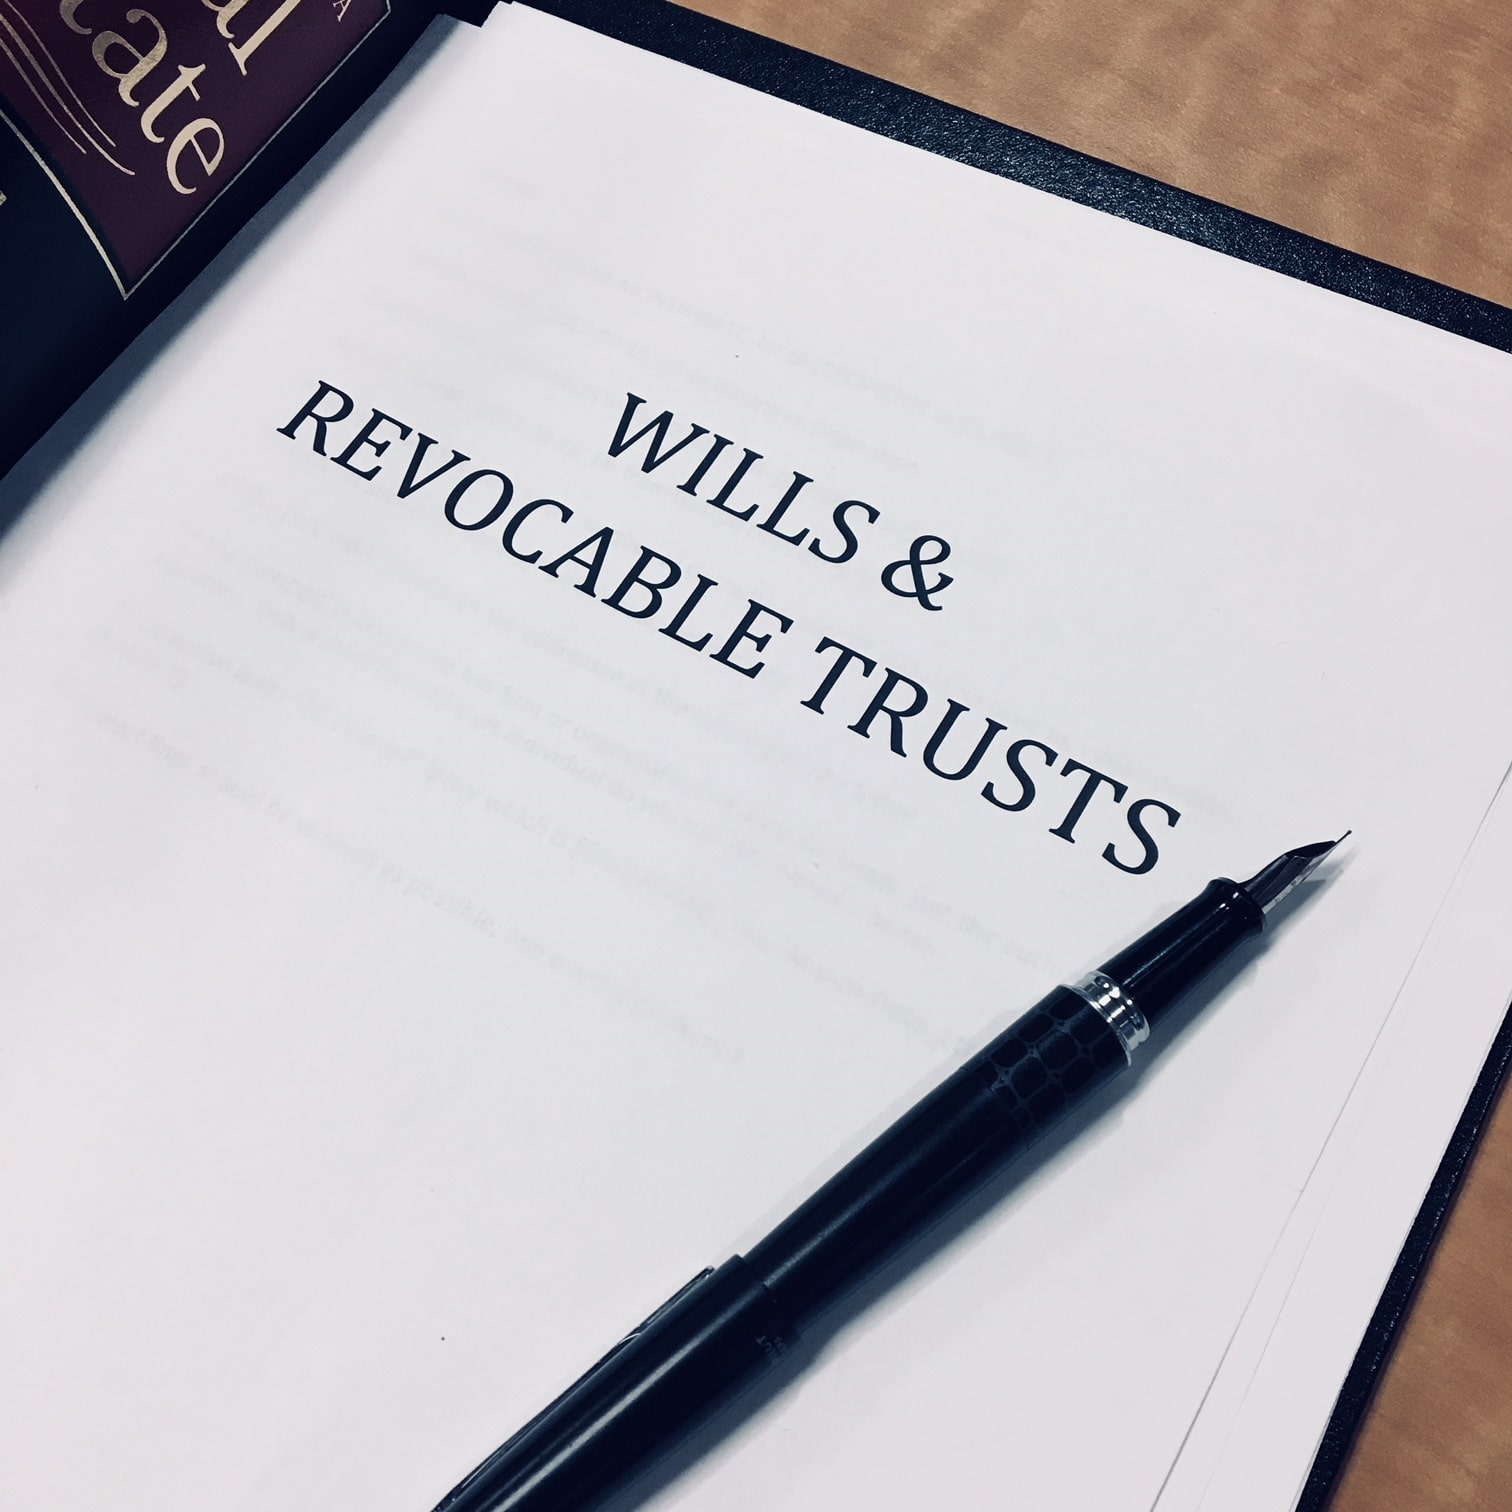 Wills and Revocable Living Trusts